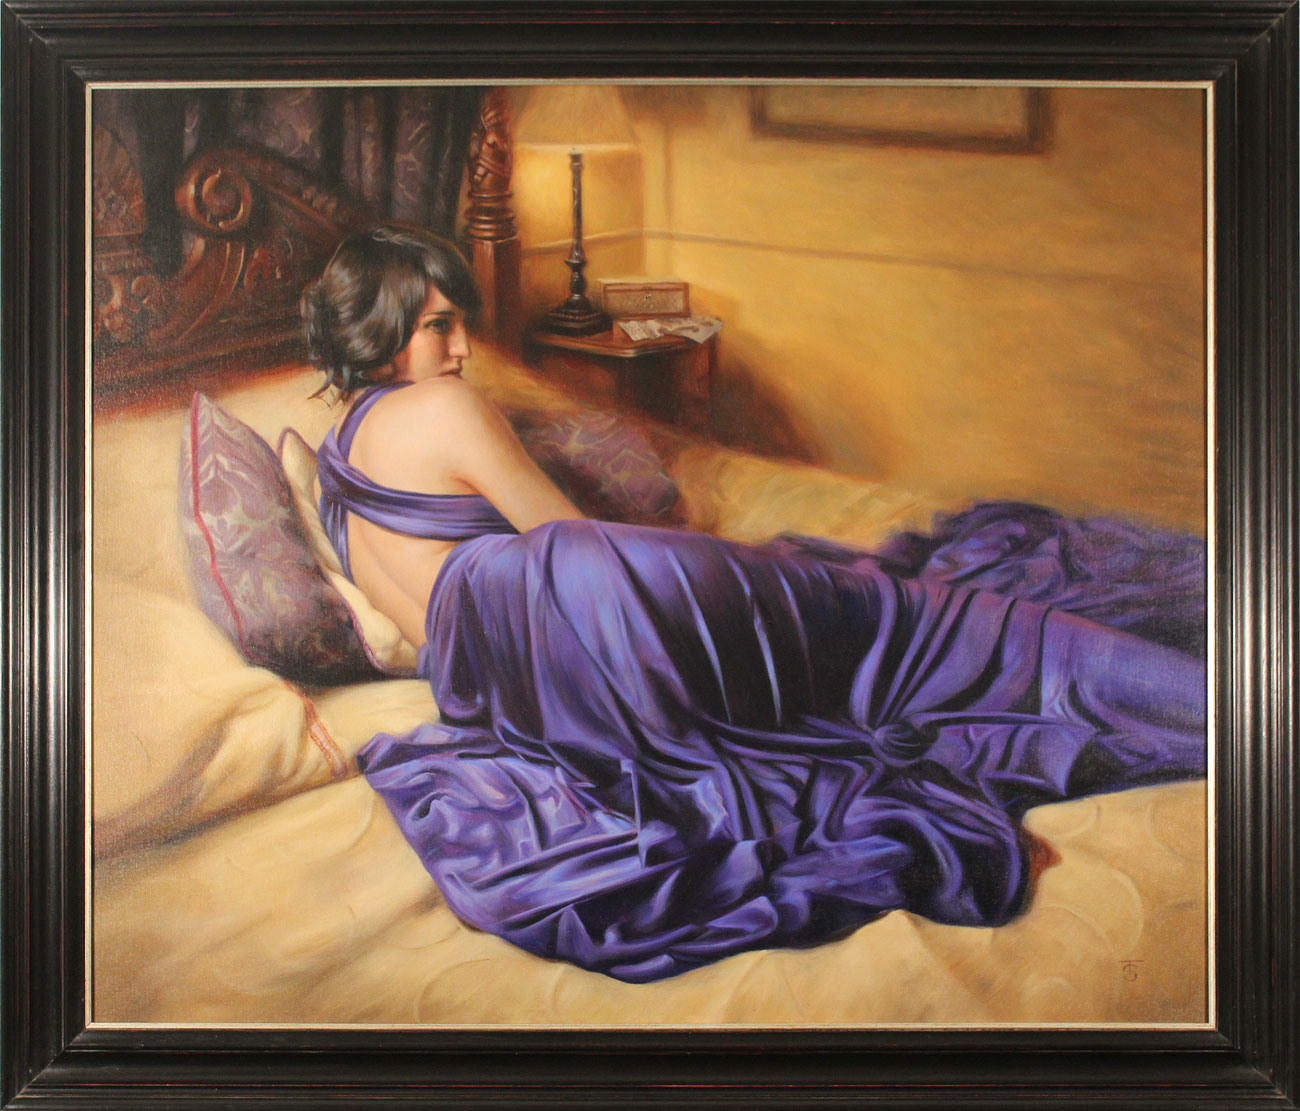 Tina Spratt, Original oil painting on canvas, The Promise Click to enlarge